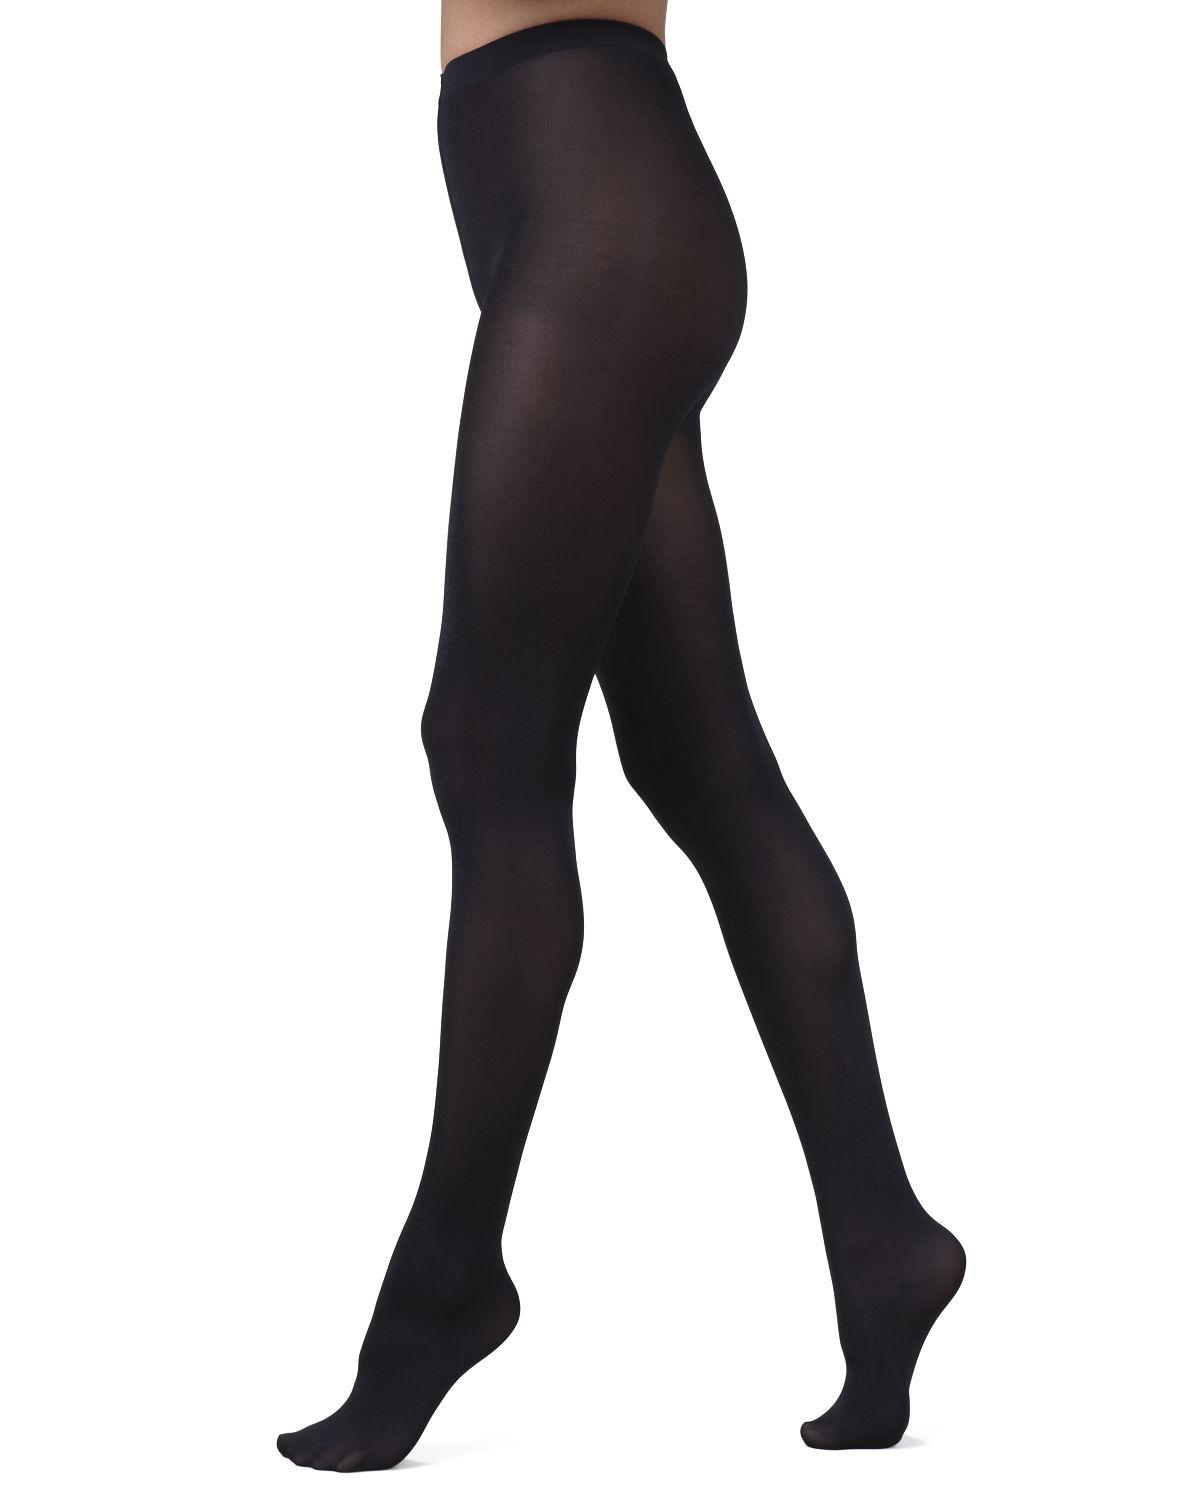 Low rise opaque pantyhose